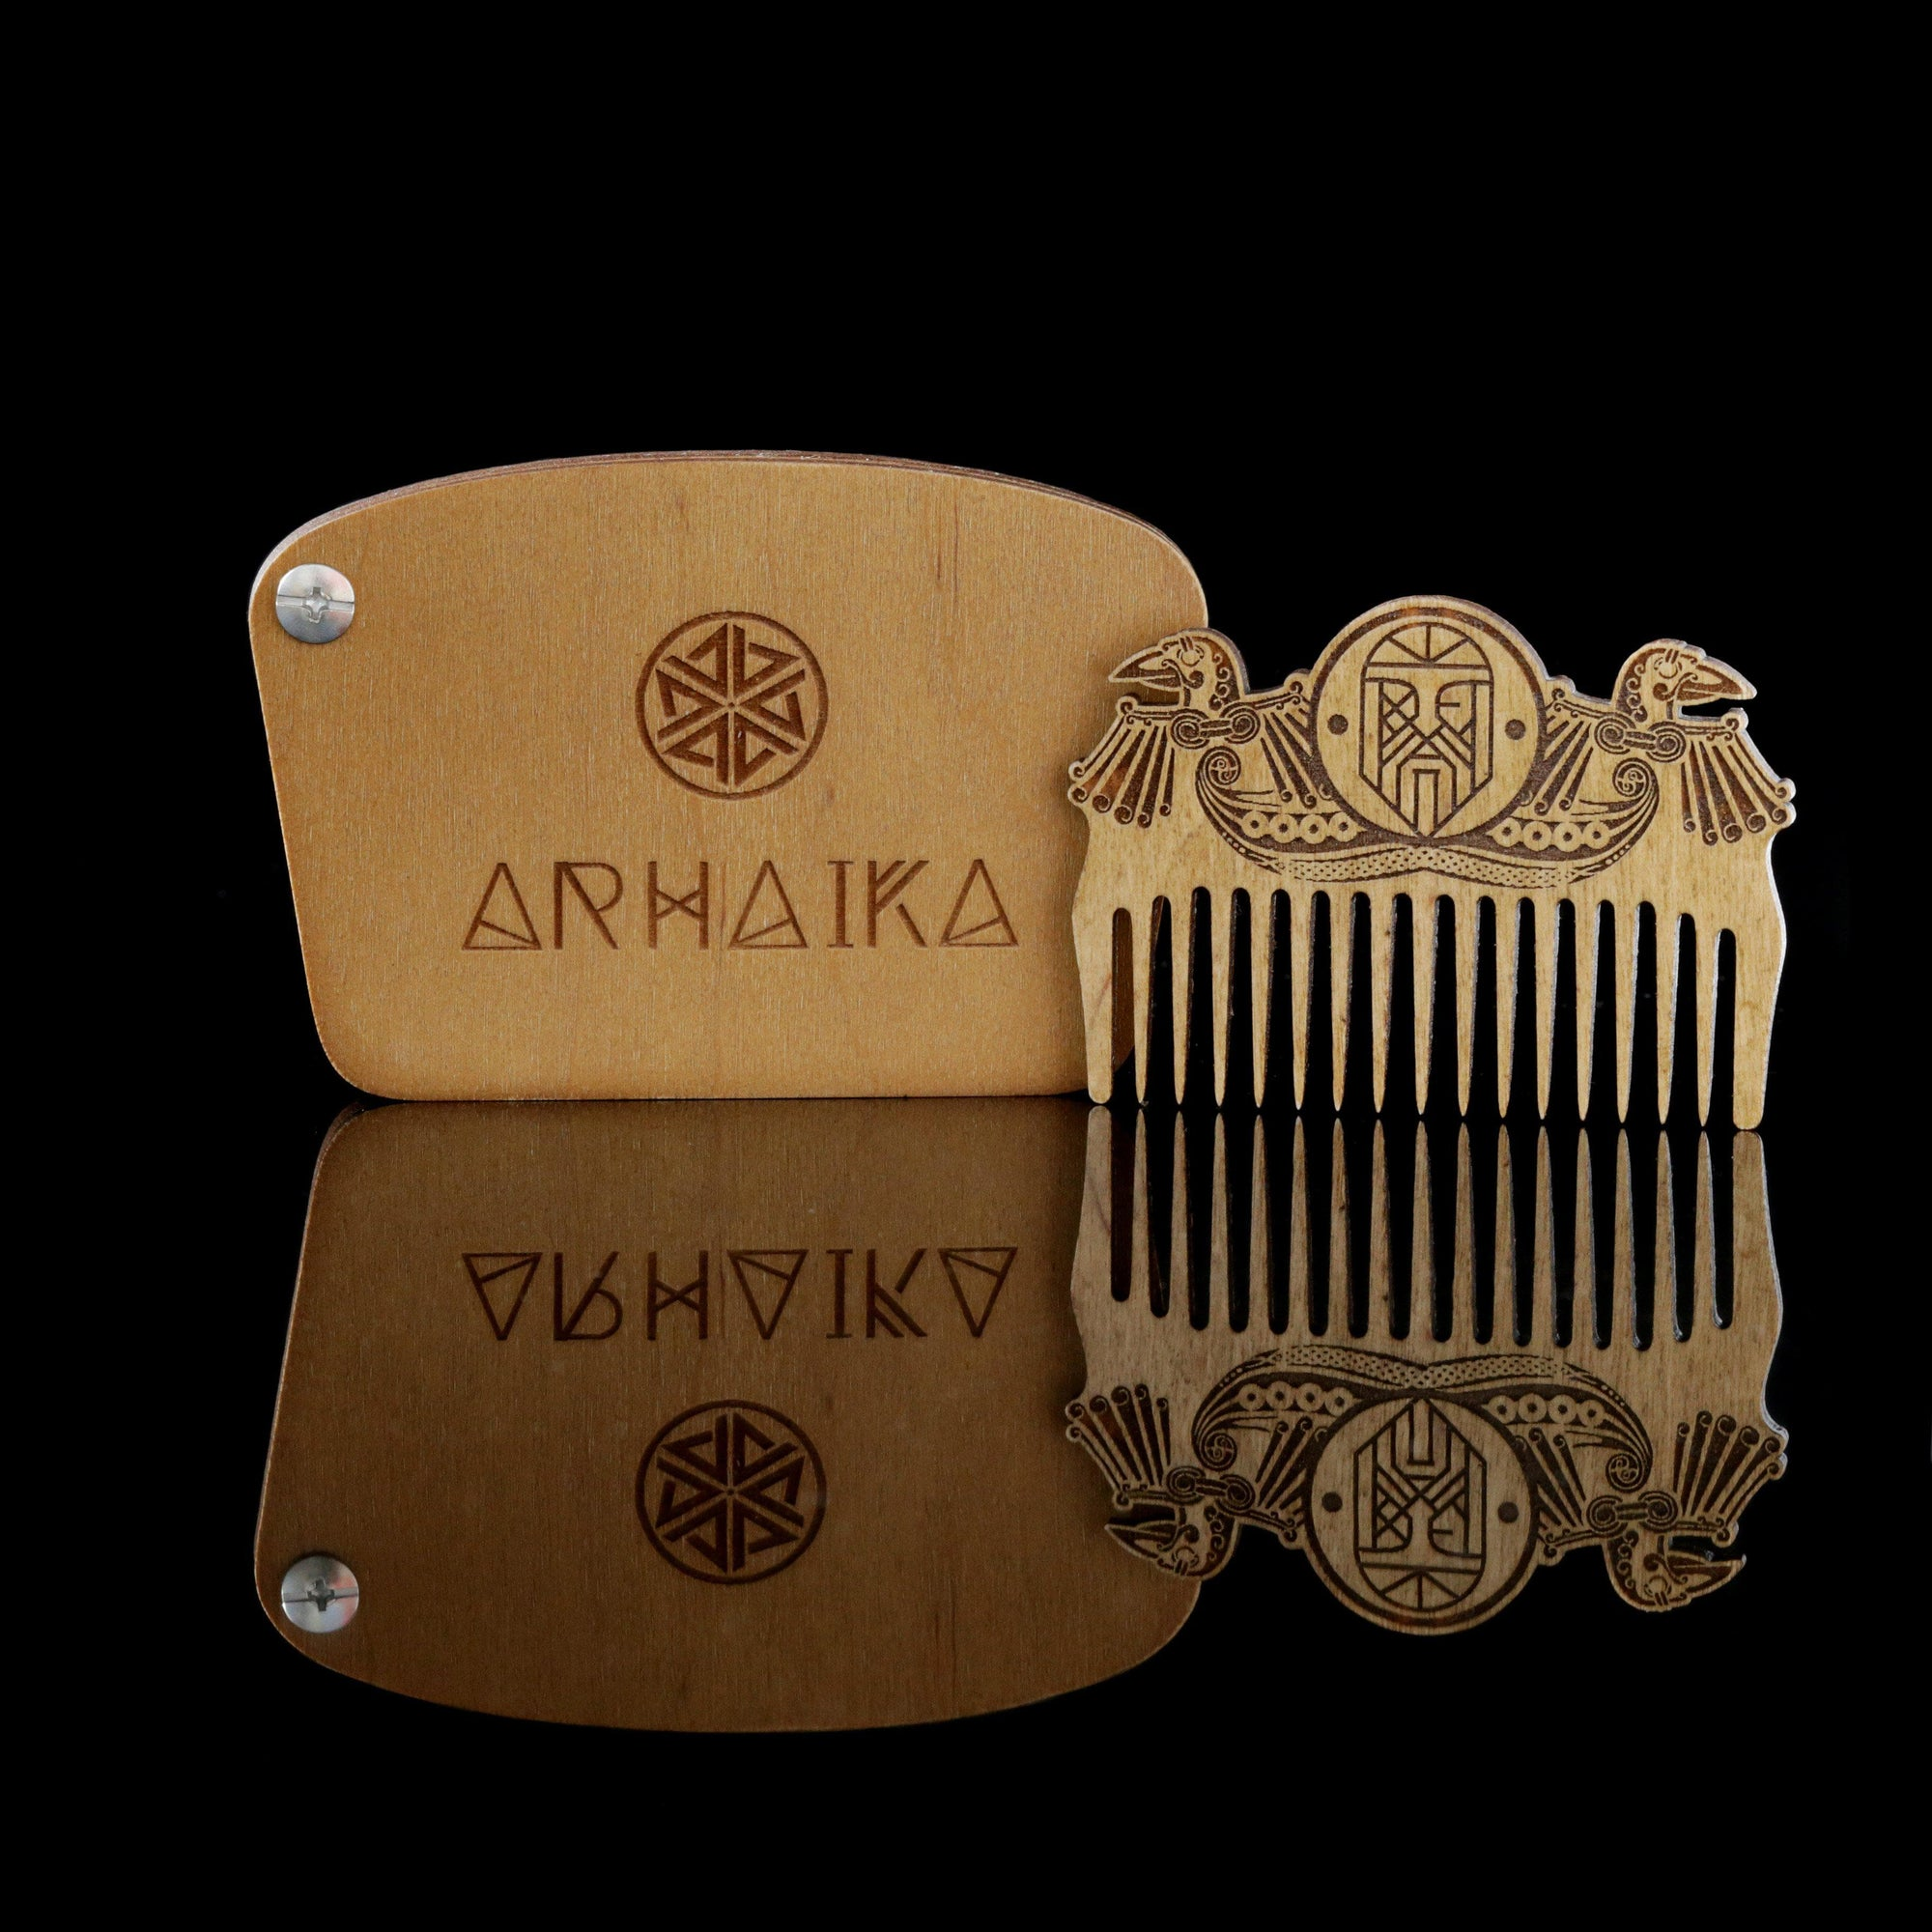 Comb Viking Odin & Ravens Wooden Beard Pocket Comb Ancient Treasures Ancientreasures Viking Odin Thor Mjolnir Celtic Ancient Egypt Norse Norse Mythology